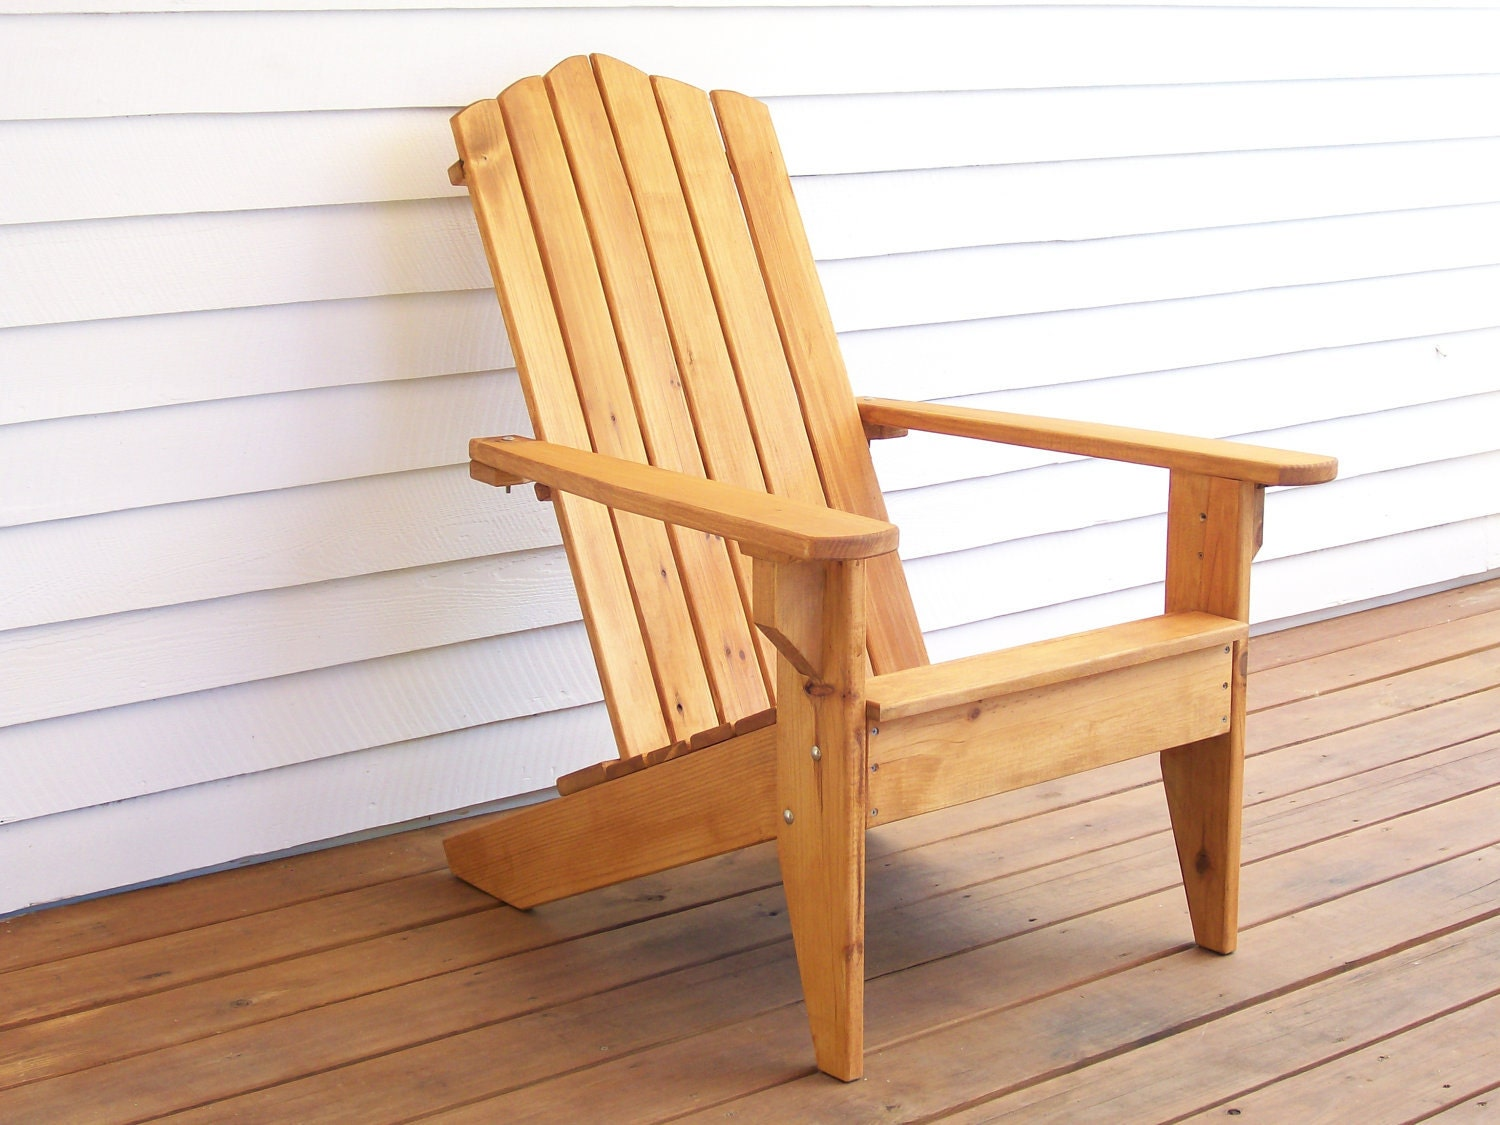 Adirondack wood chair adirondack furniture outdoor wood Wooden furniture pics